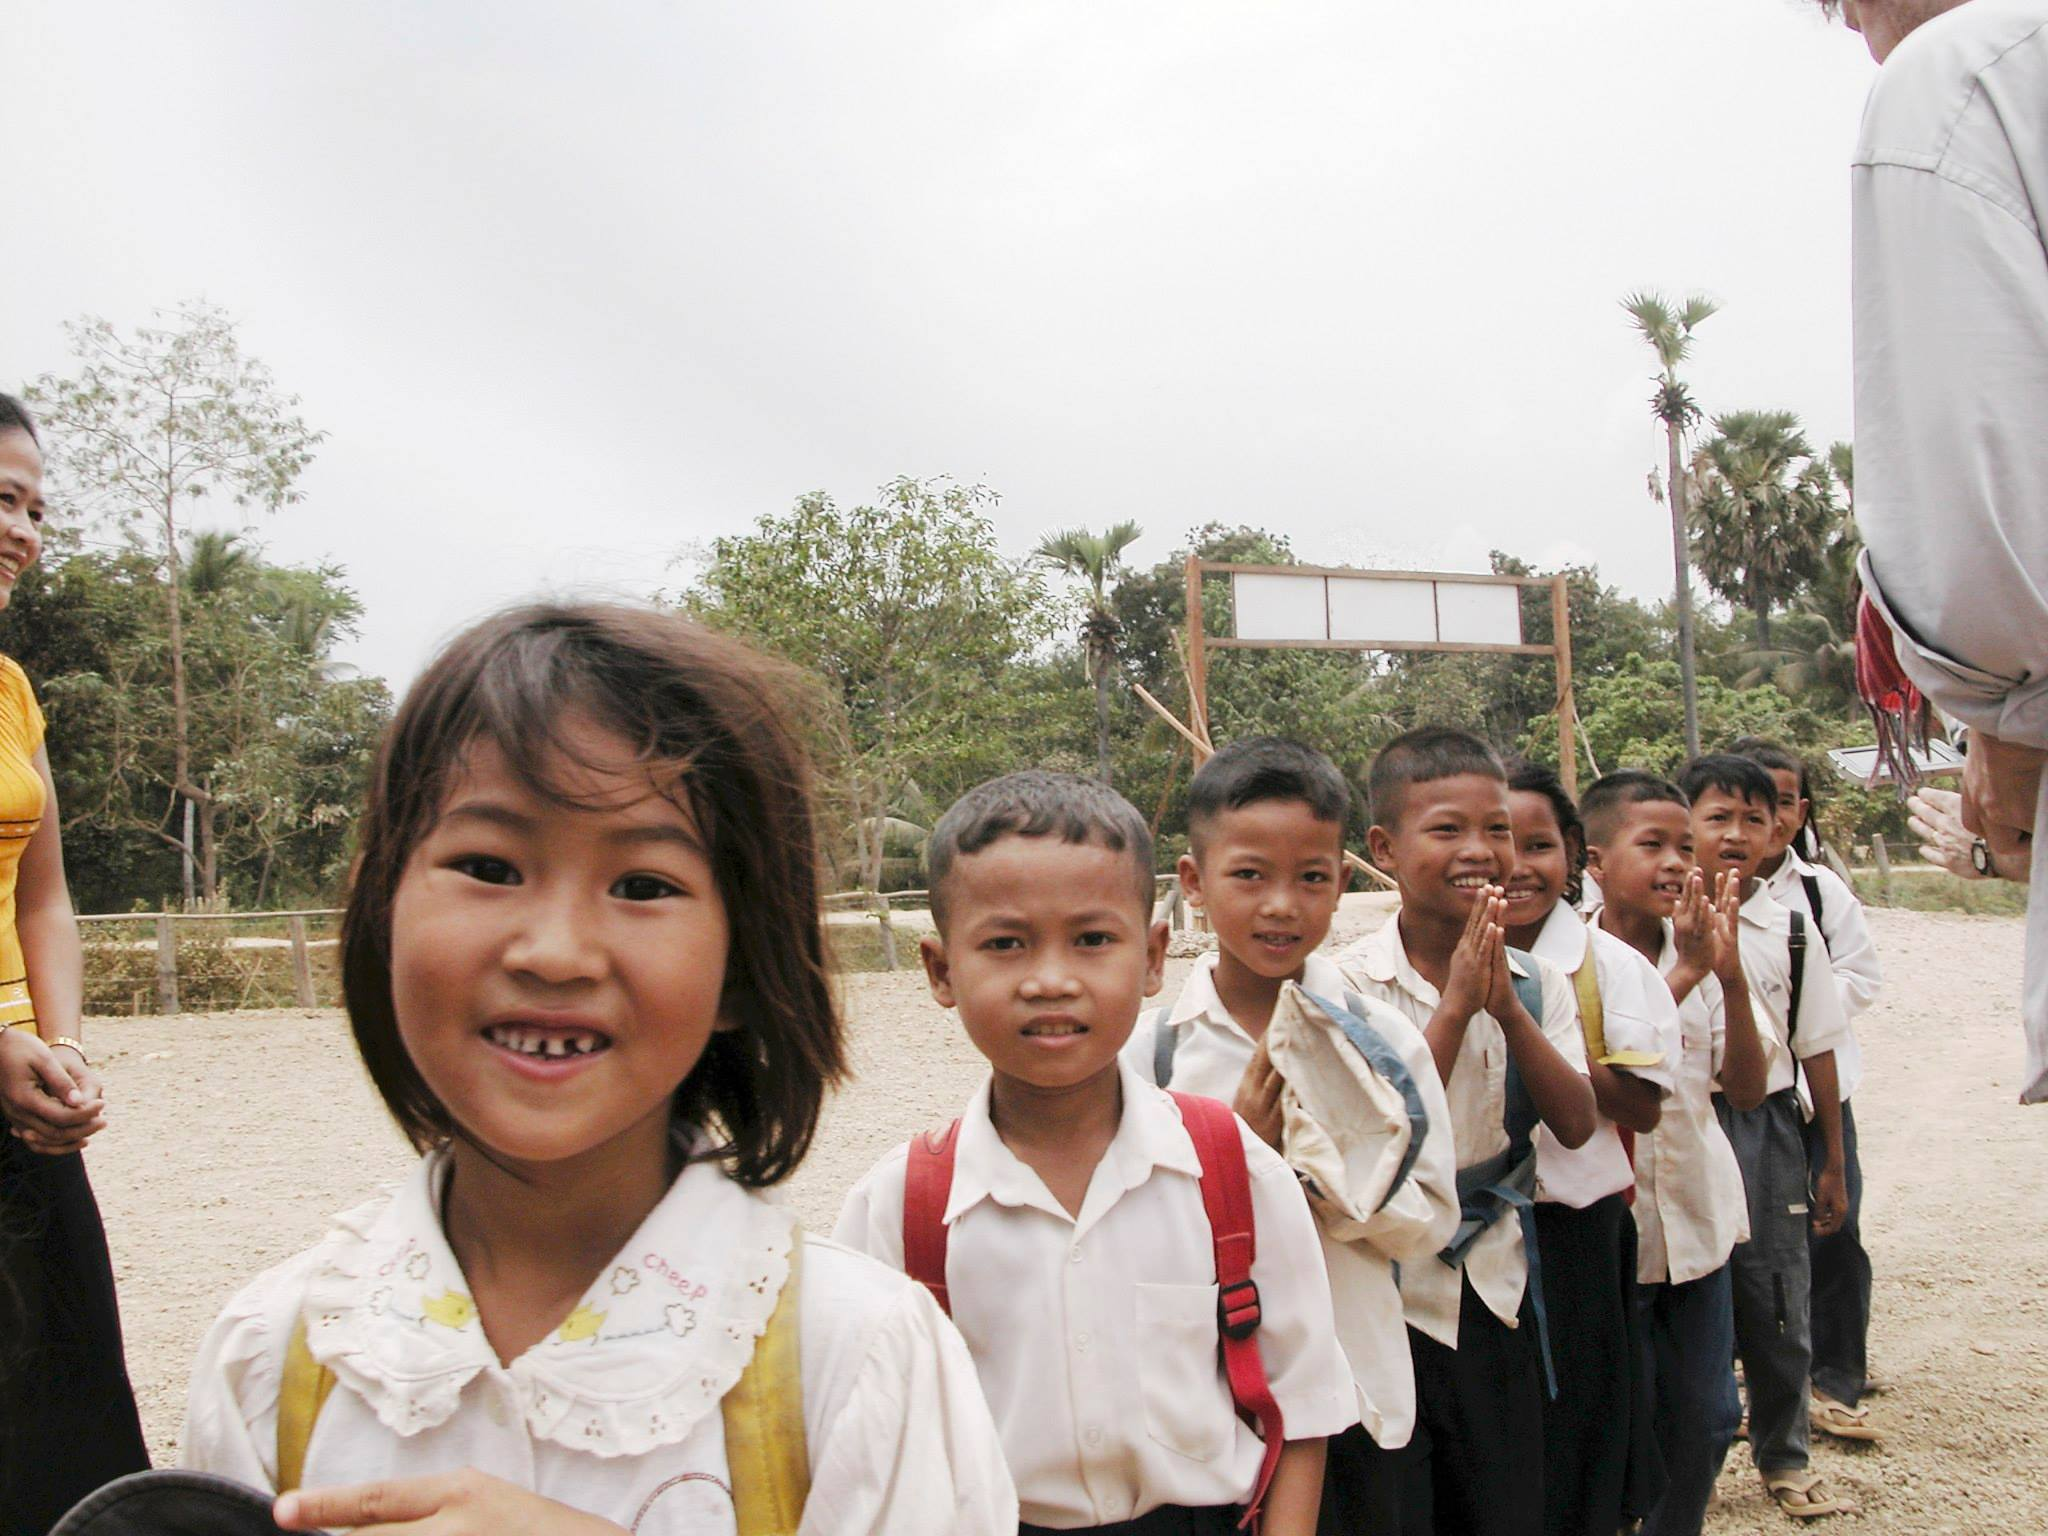 I took this picture more than a decade ago. It shows the  very first  Asia's Hope children from our first home in Battambang, Cambodia. Manyof children are now young adults heading to university and to their first jobs!